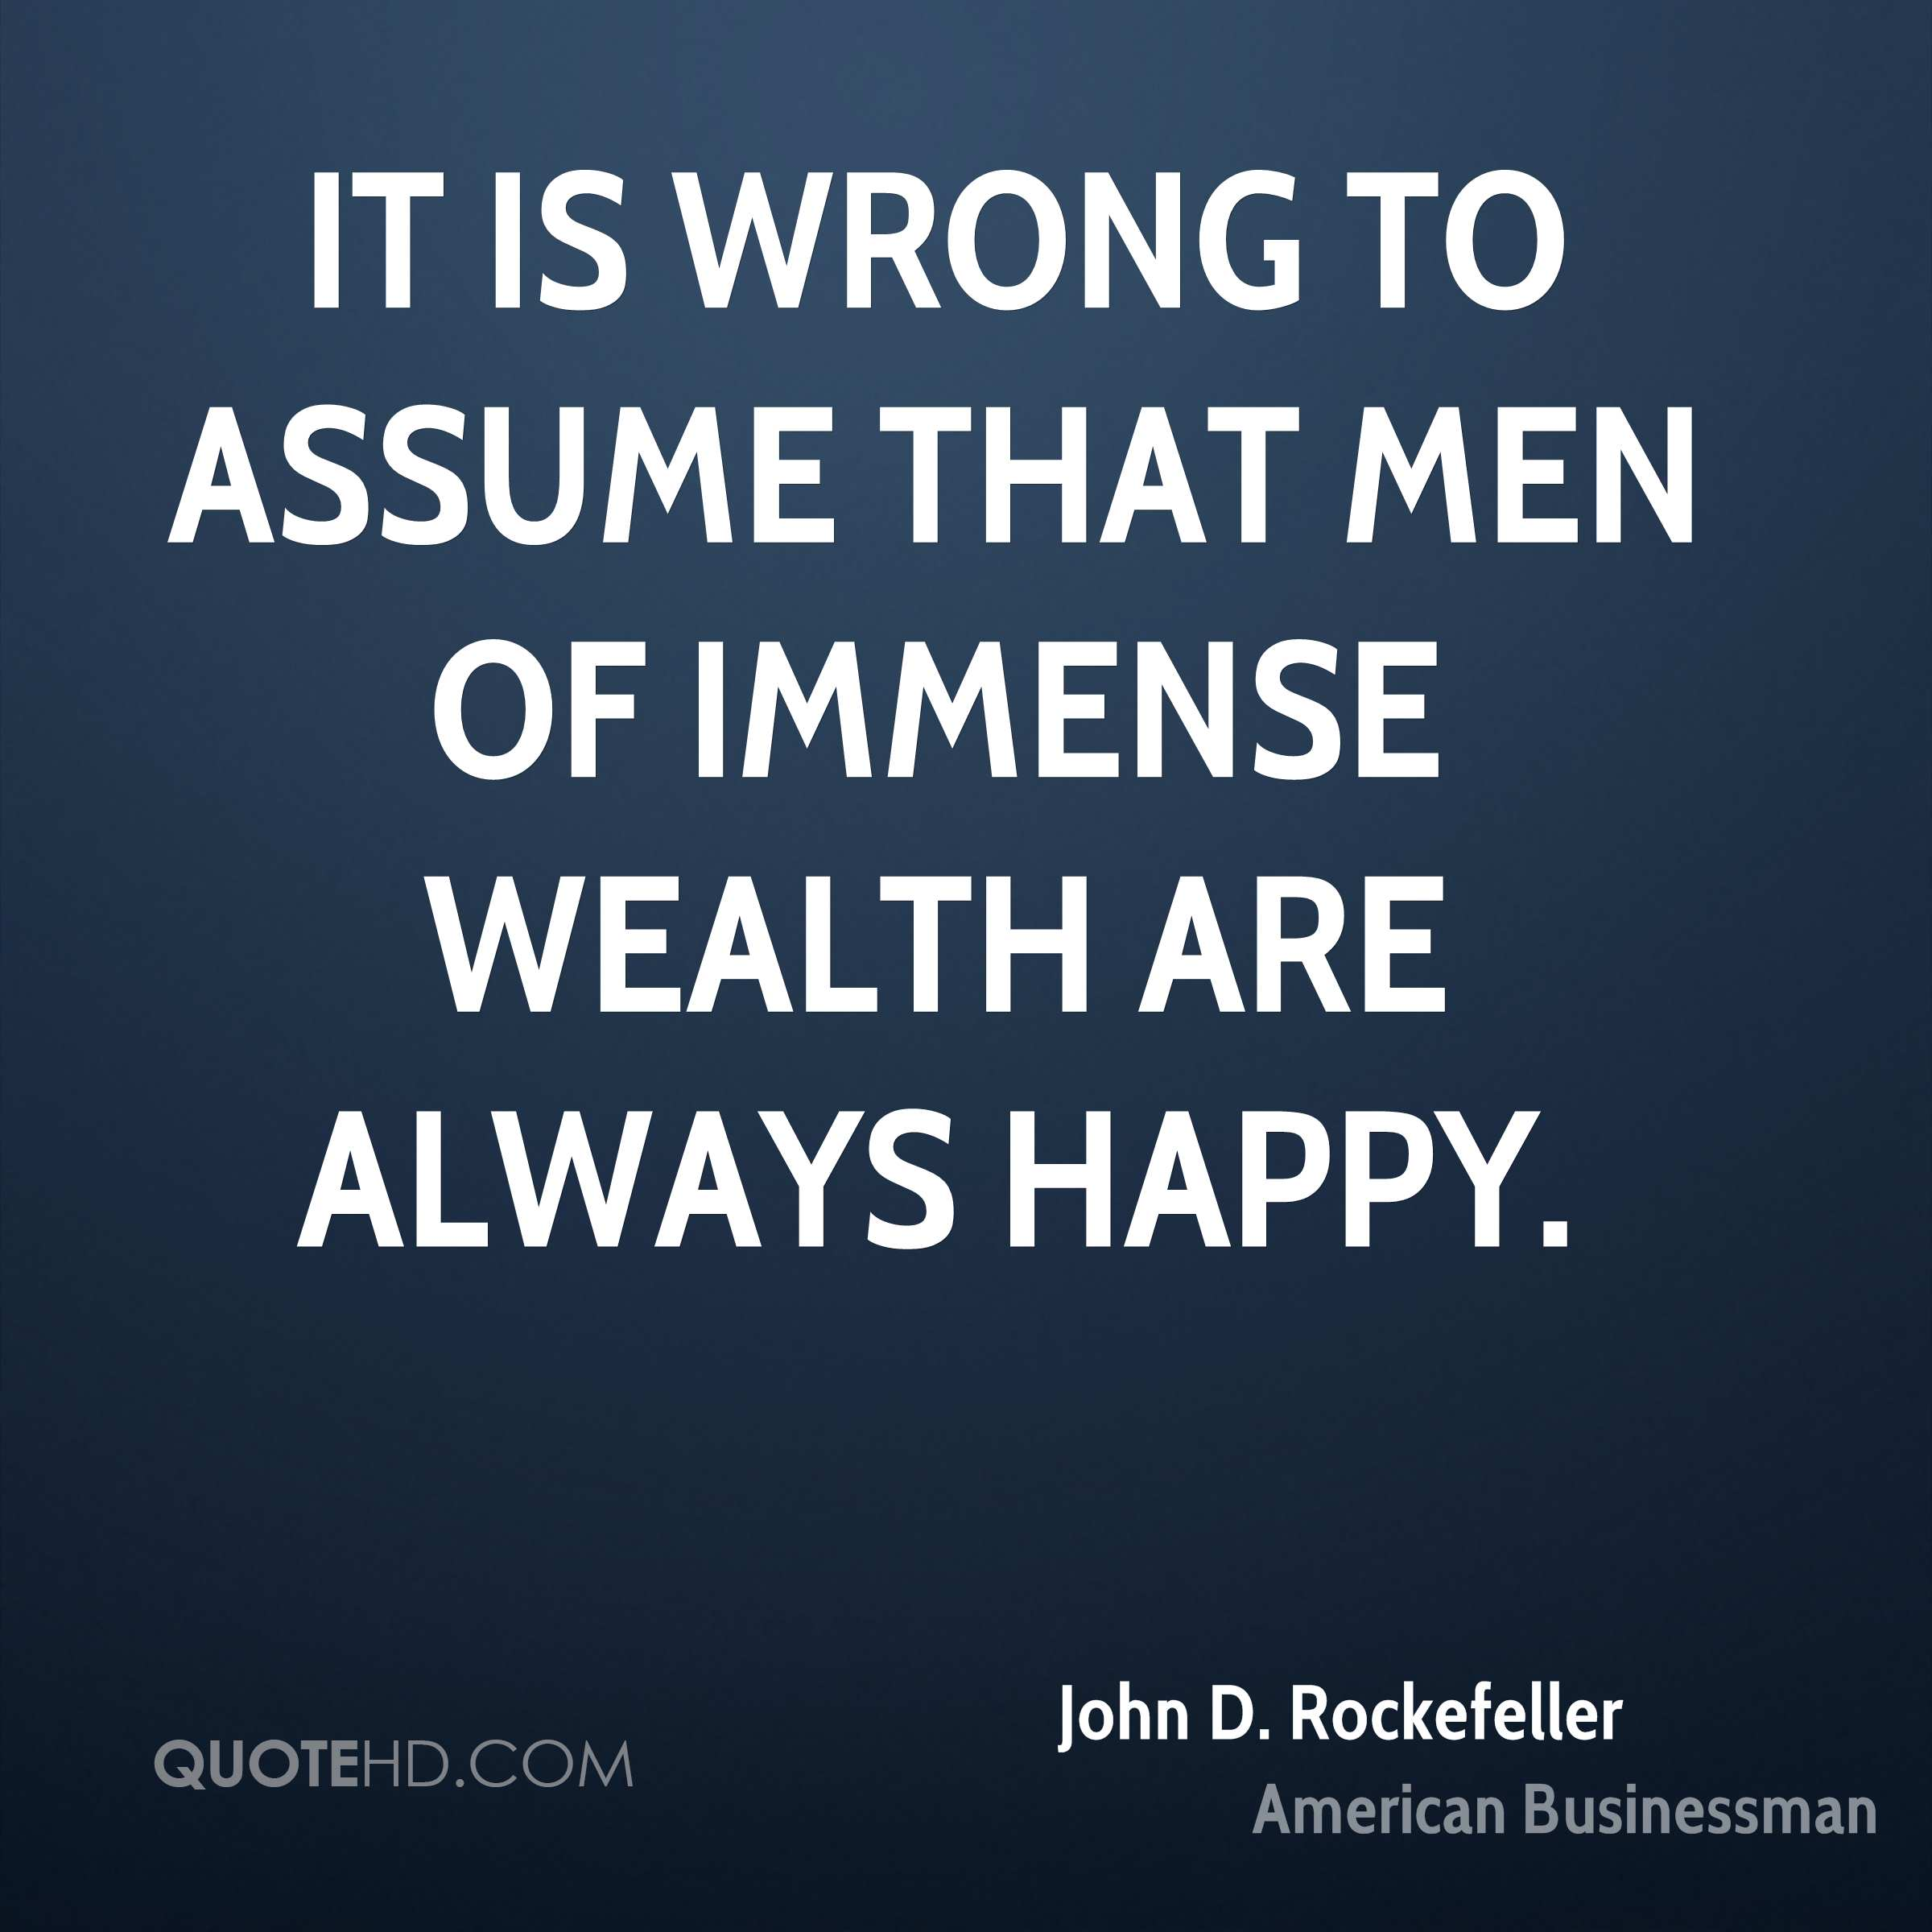 It is wrong to assume that men of immense wealth are always happy.